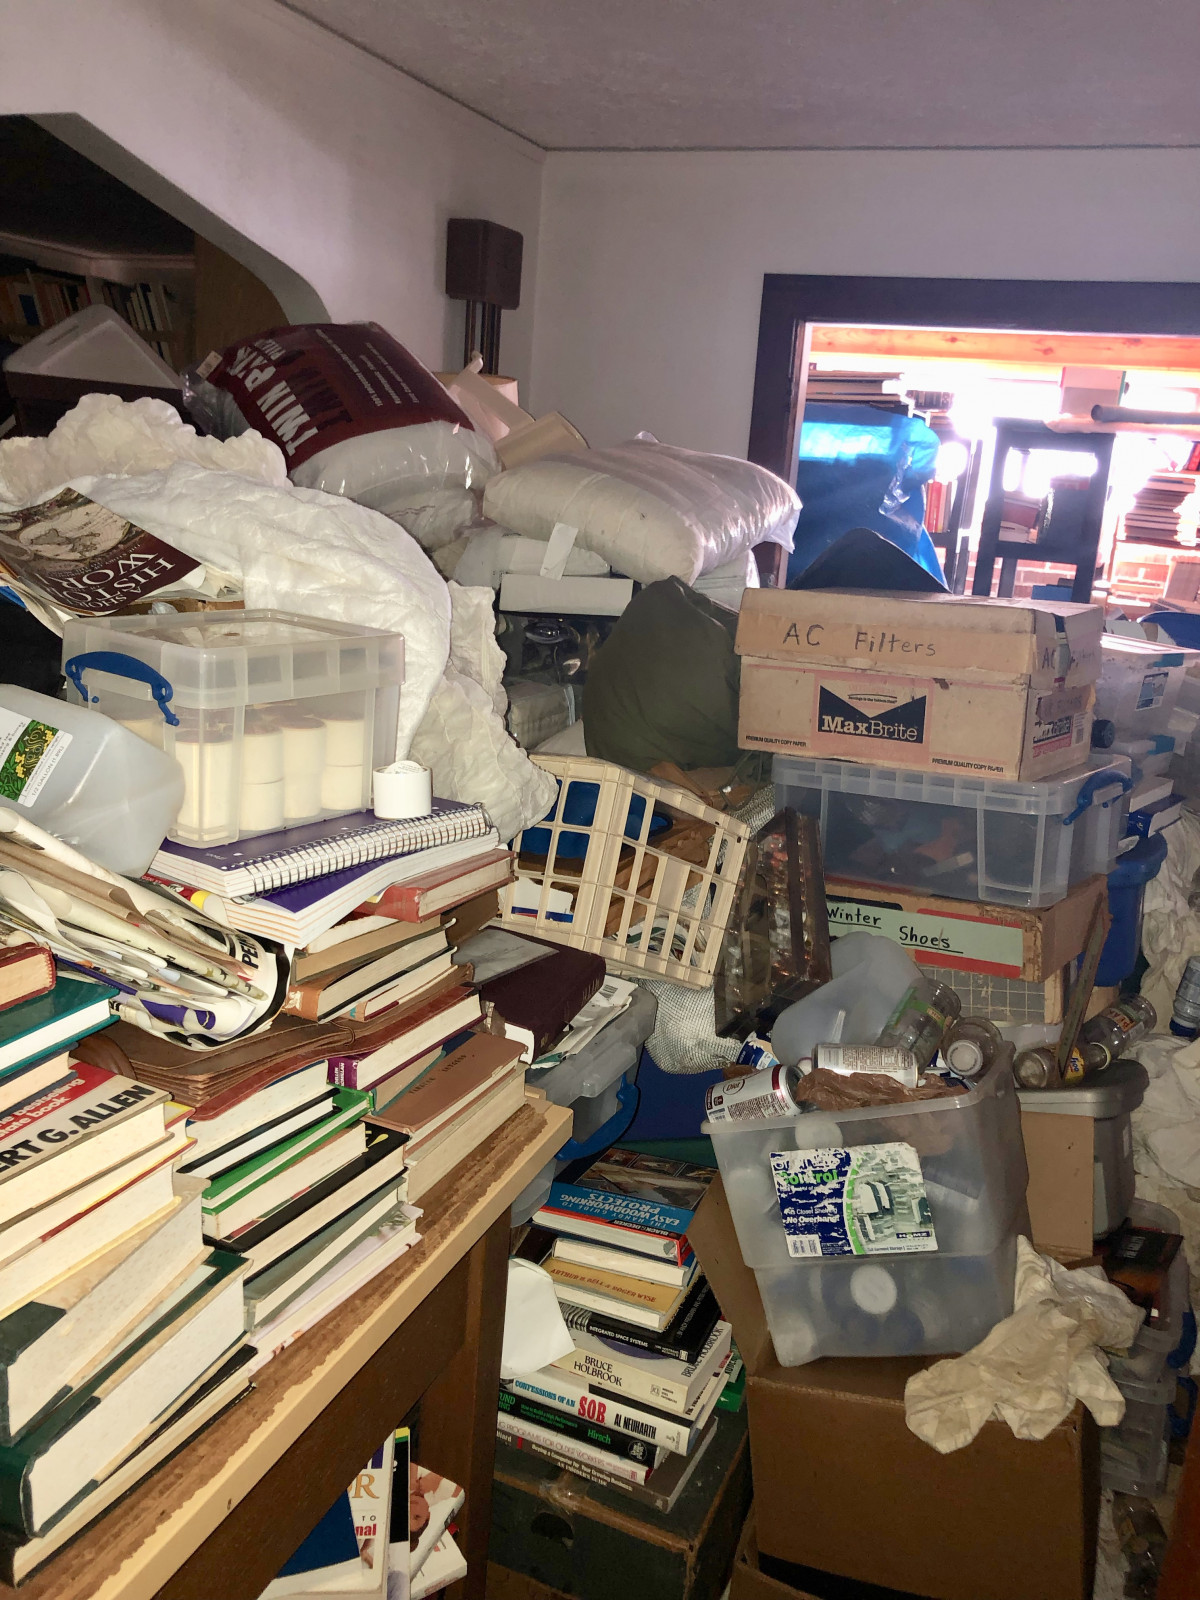 HOW HOARDING IMPACTS FAMILIES